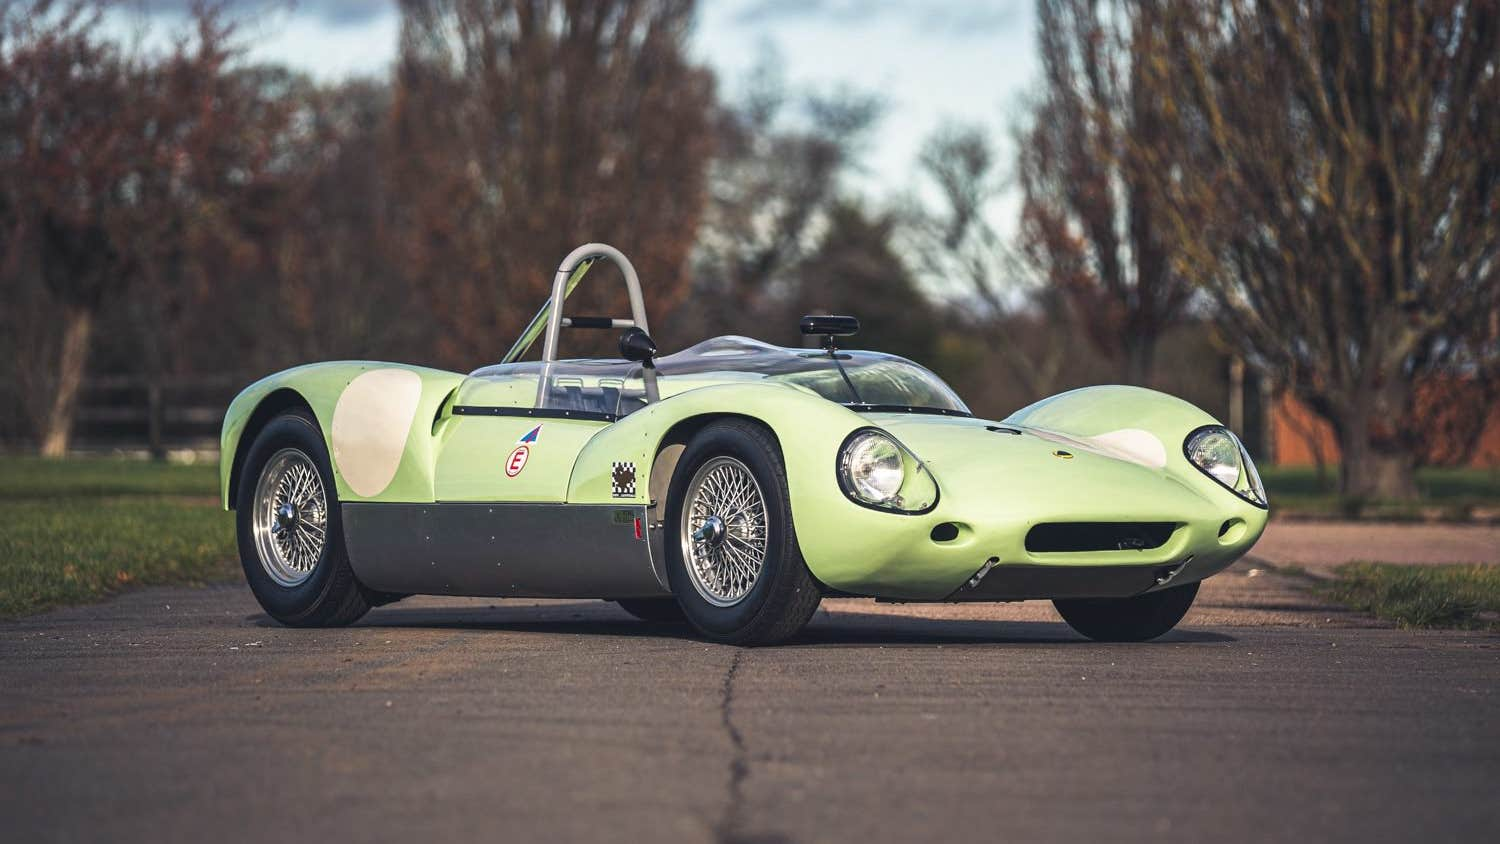 Race-winning Lotus driven by Jim Clark among rare competition cars up for auction